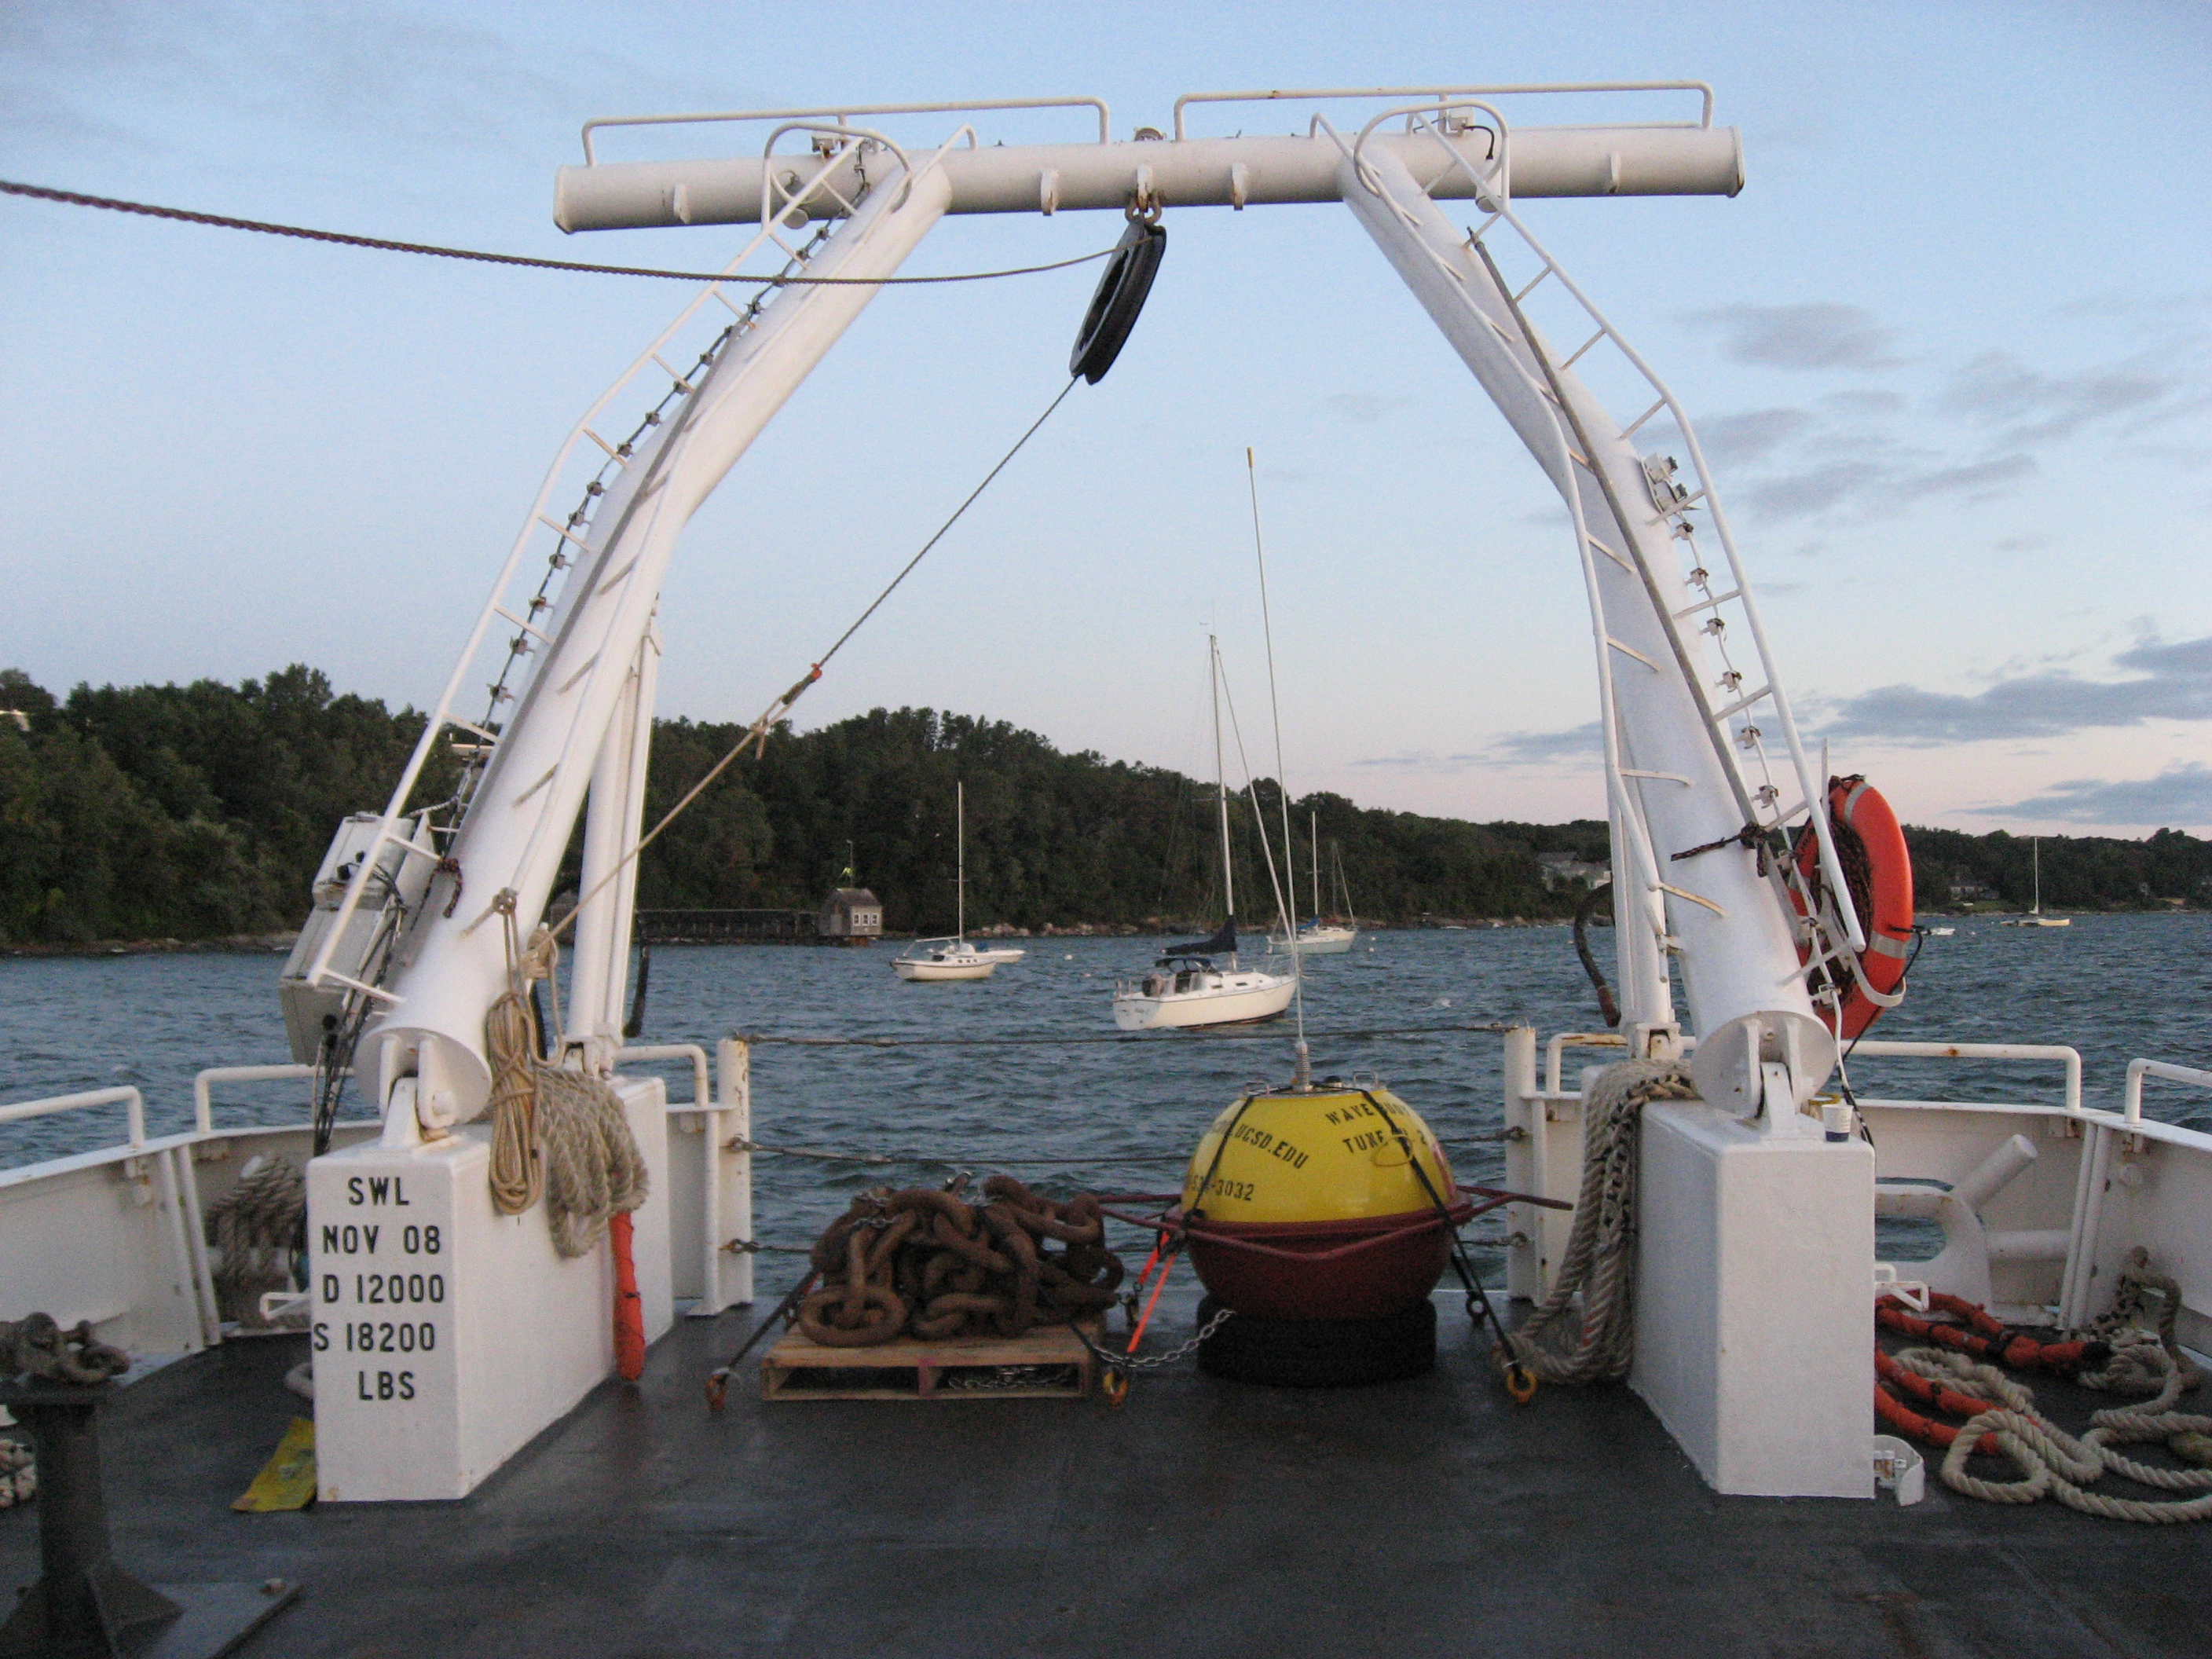 Rear deck of deployment vessel with buoy and anchor chain